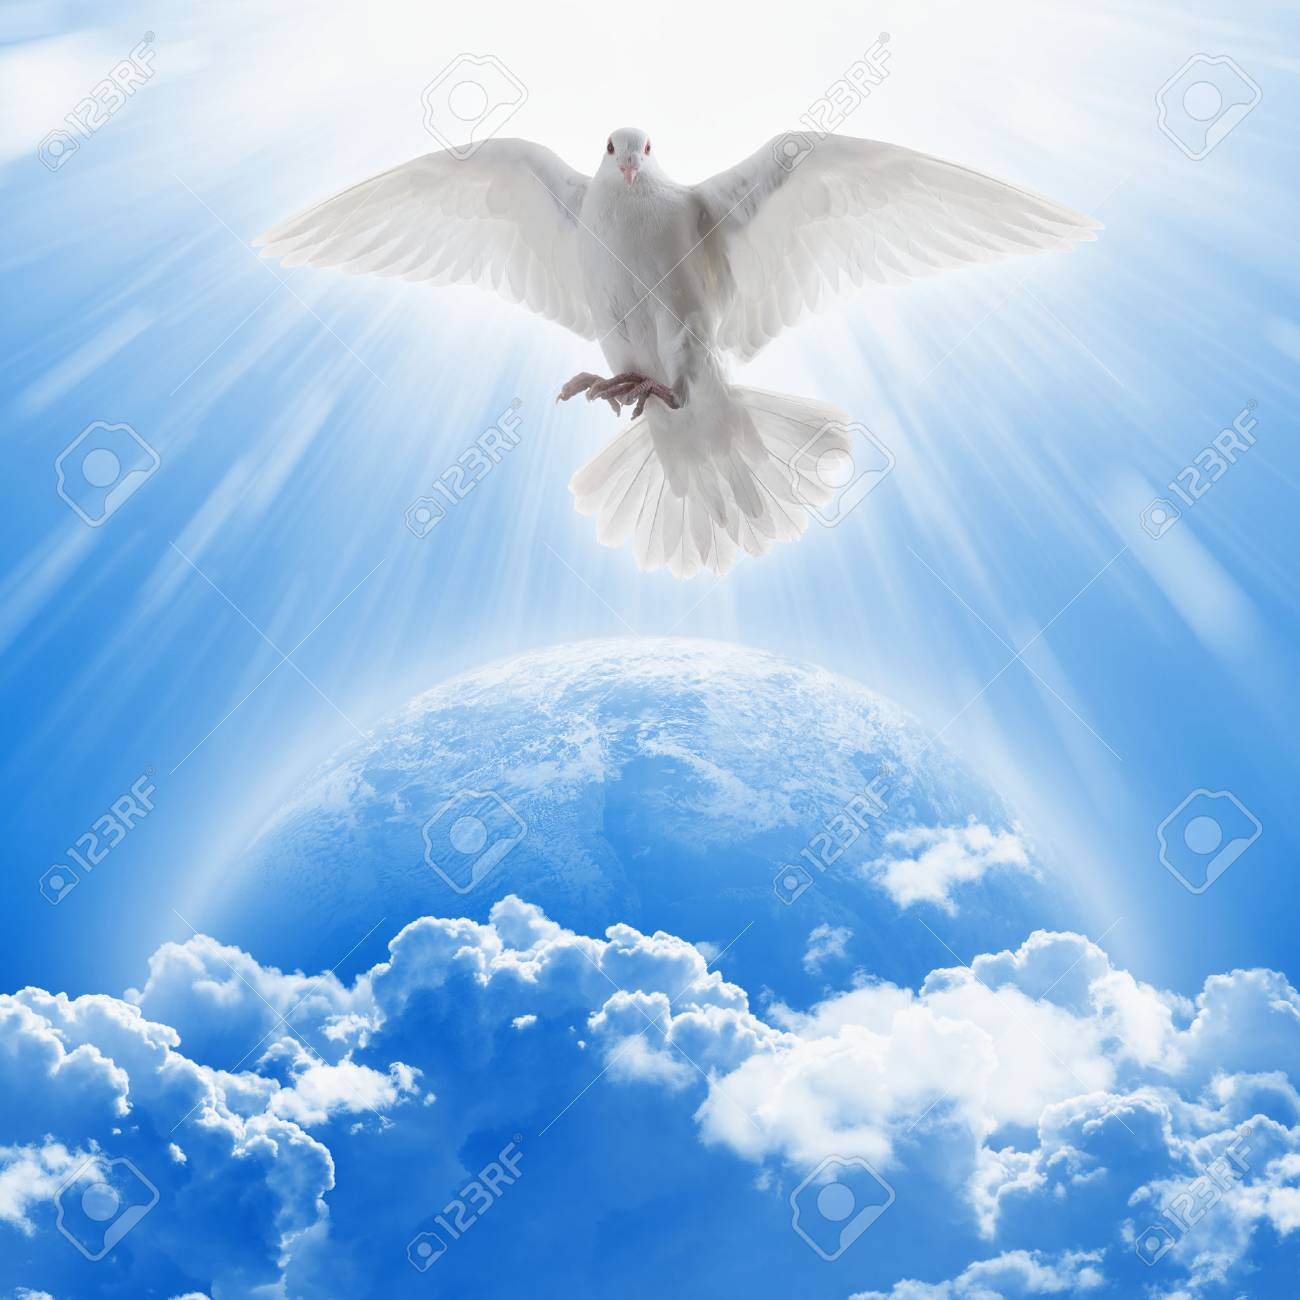 White dove symbol of love and peace flies above planet Earth. - 74949381